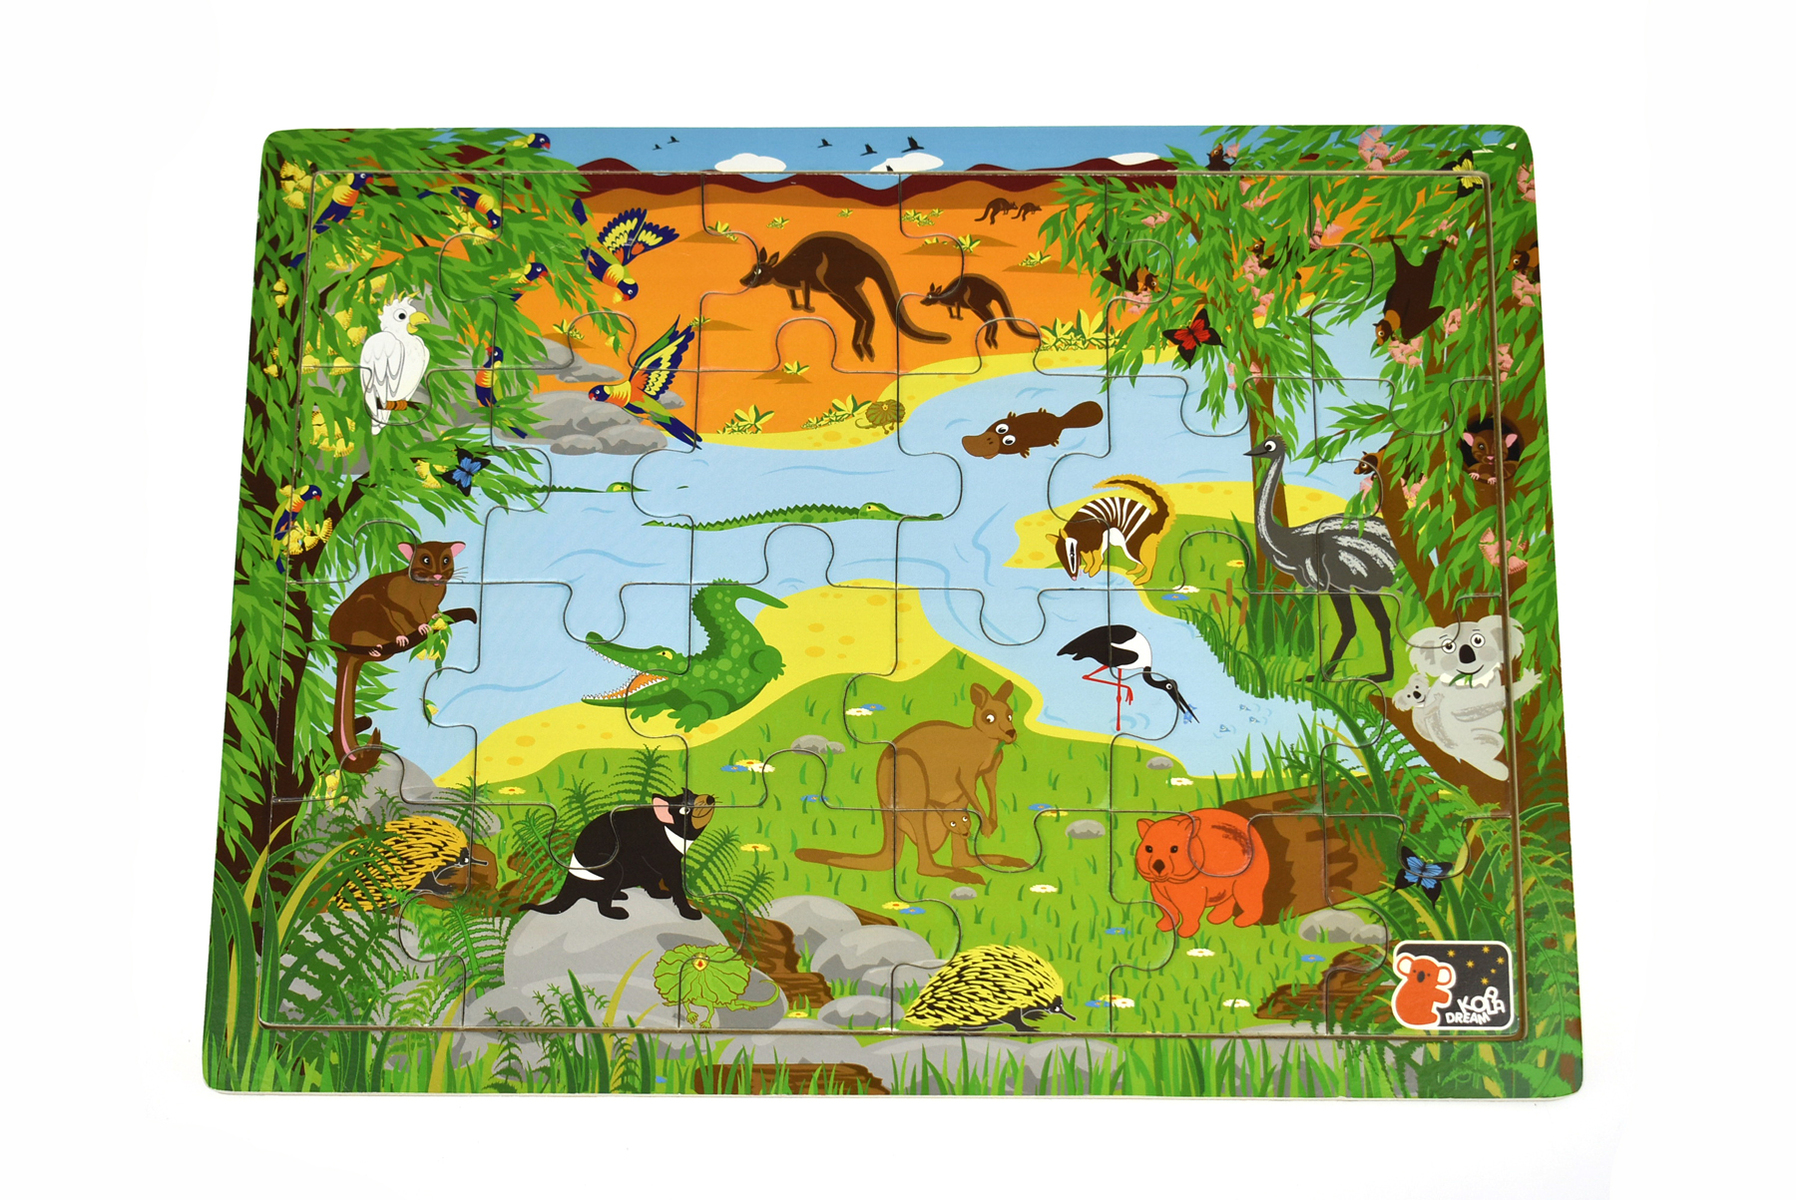 Wooden Australian Animals & Names jigsaw, interlocking puzzle by Koala Dream